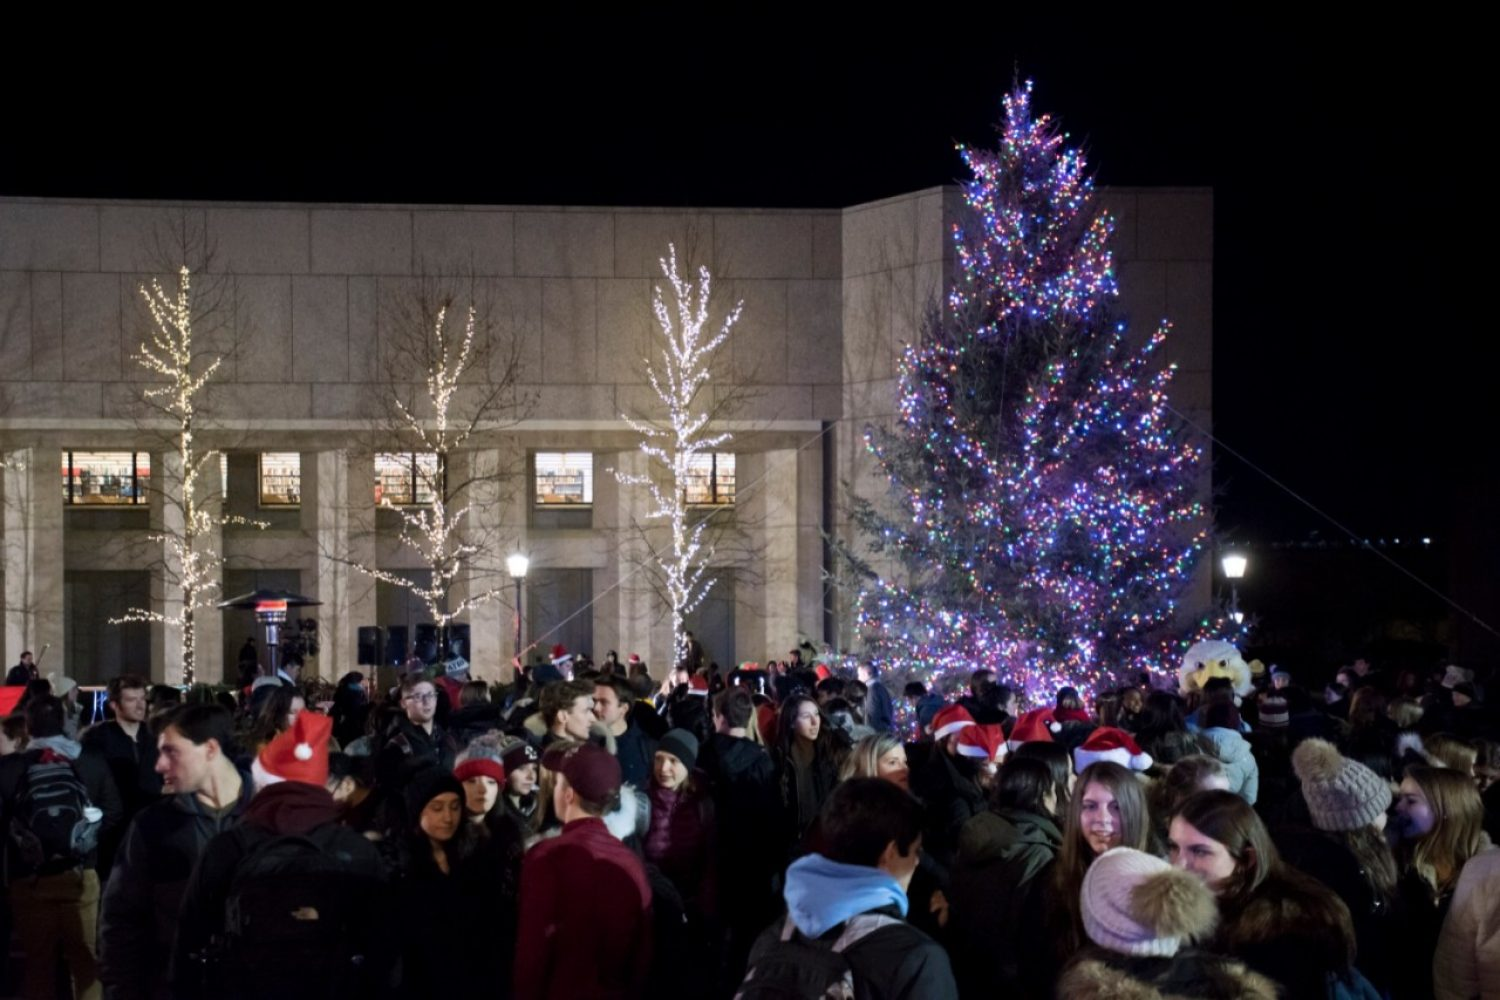 Students and Christmas tree on the Plaza